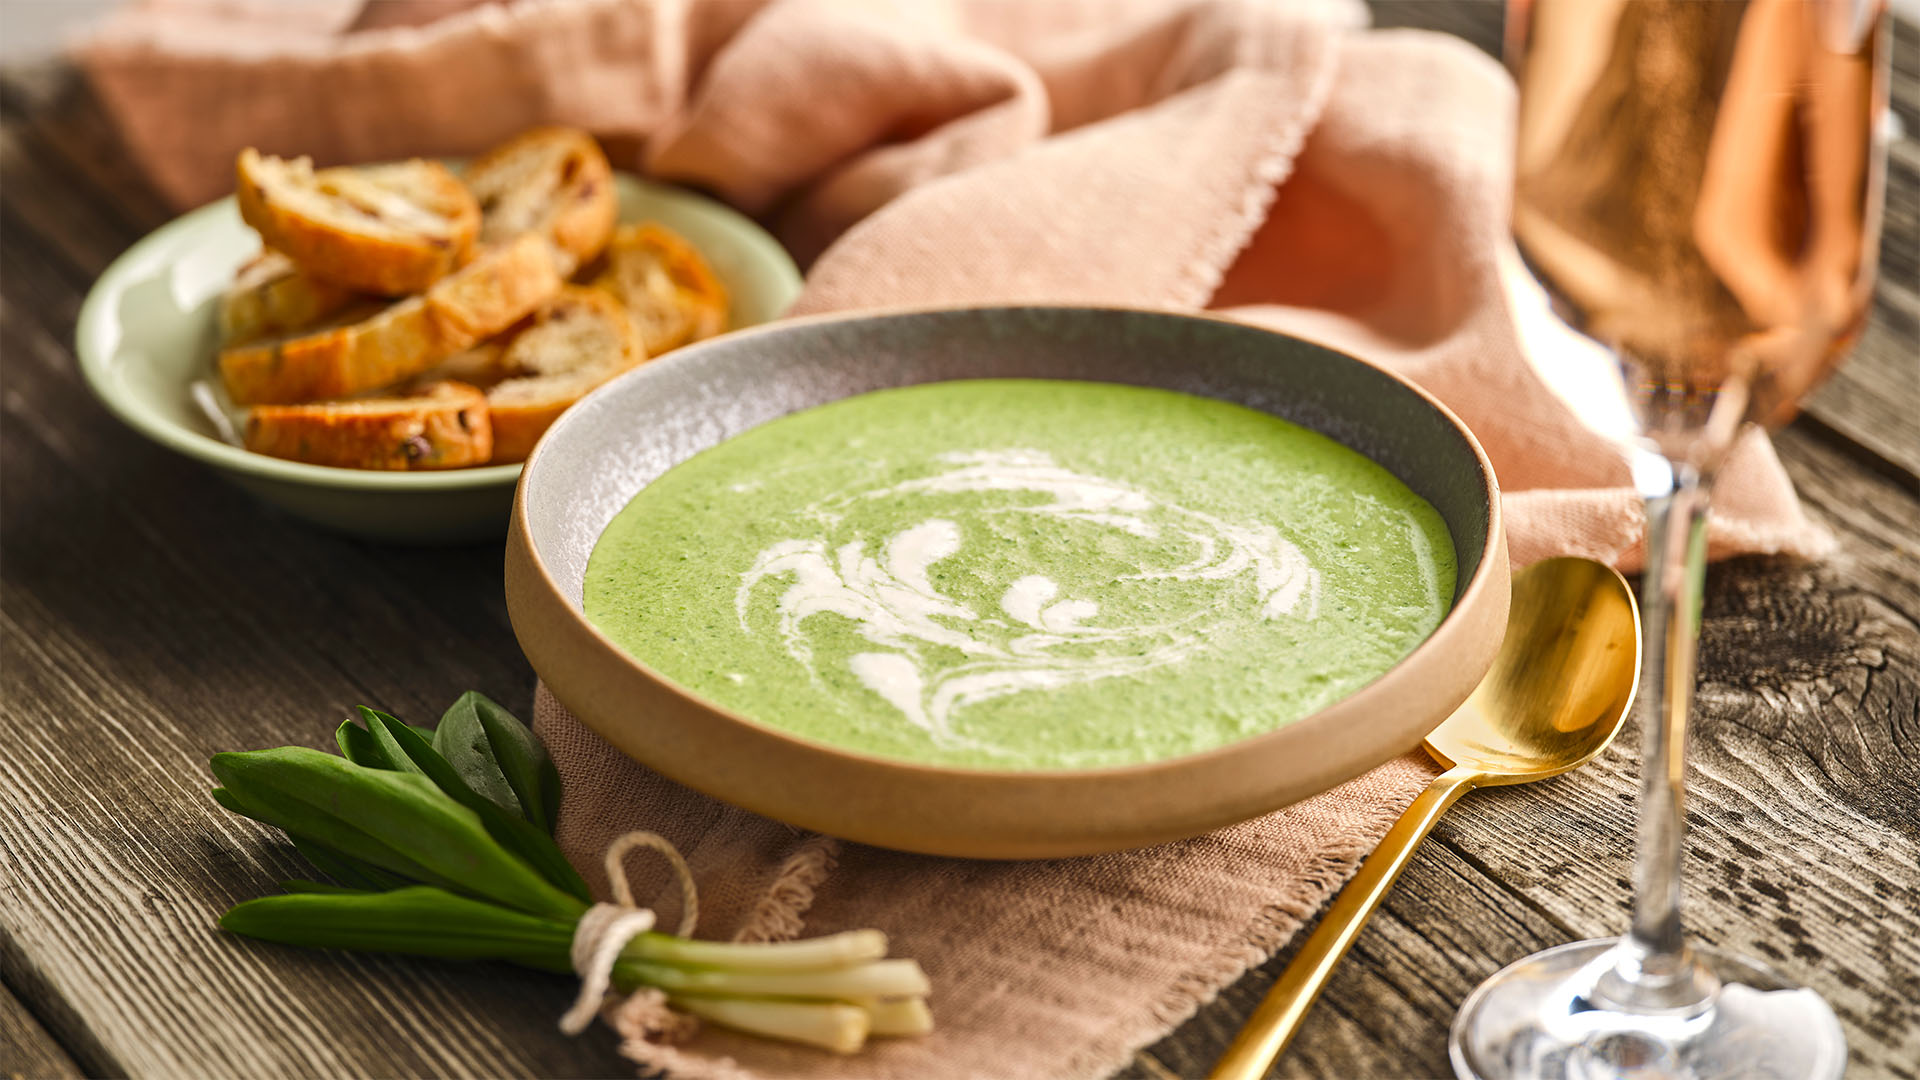 Side shot of Leek Spinach Veloute in a brown round bowl next to a bundle of leeks.